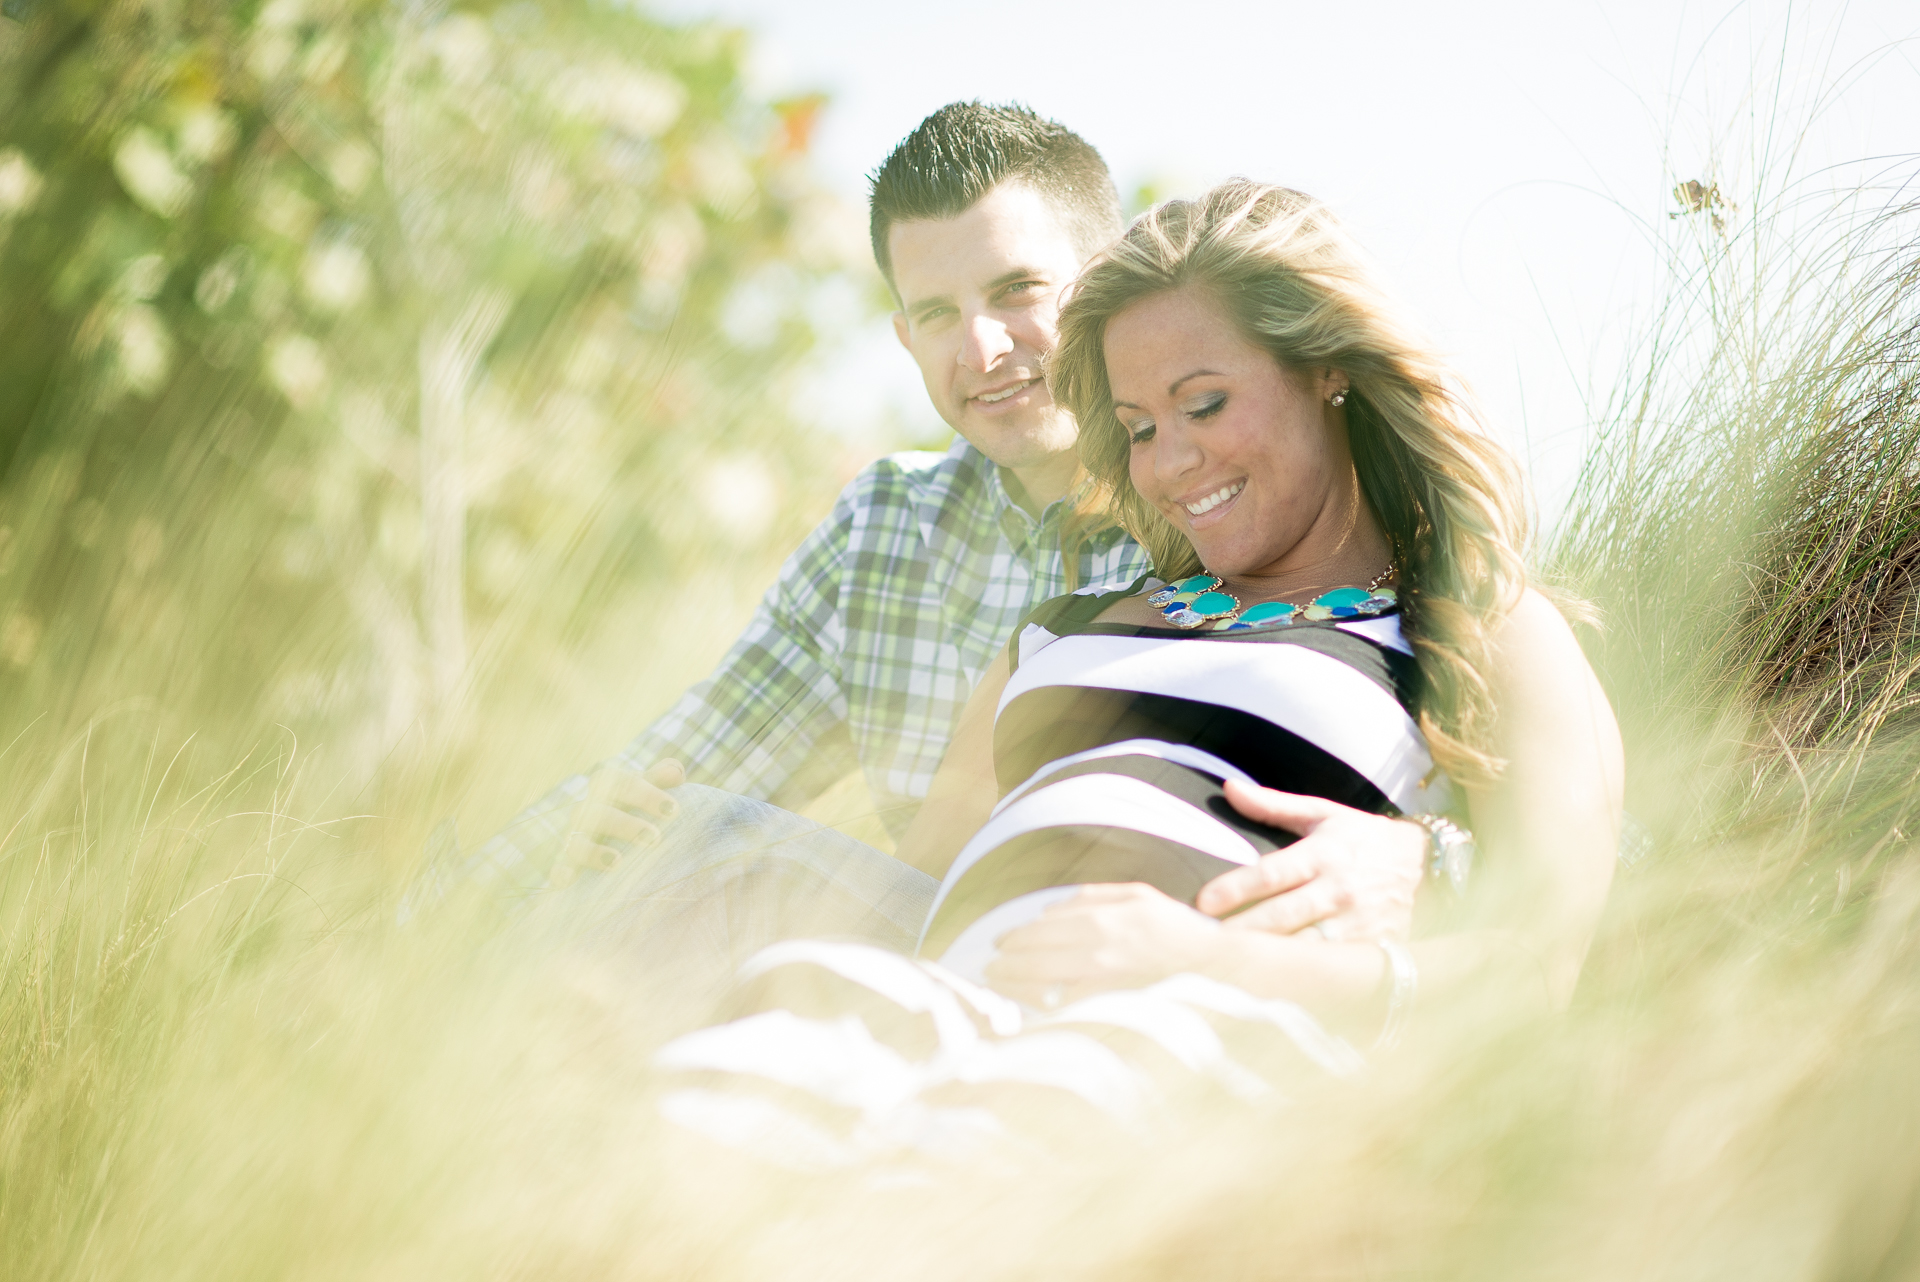 Nicole and her husband Marshal during their maternity photo shoot at blowing rocks